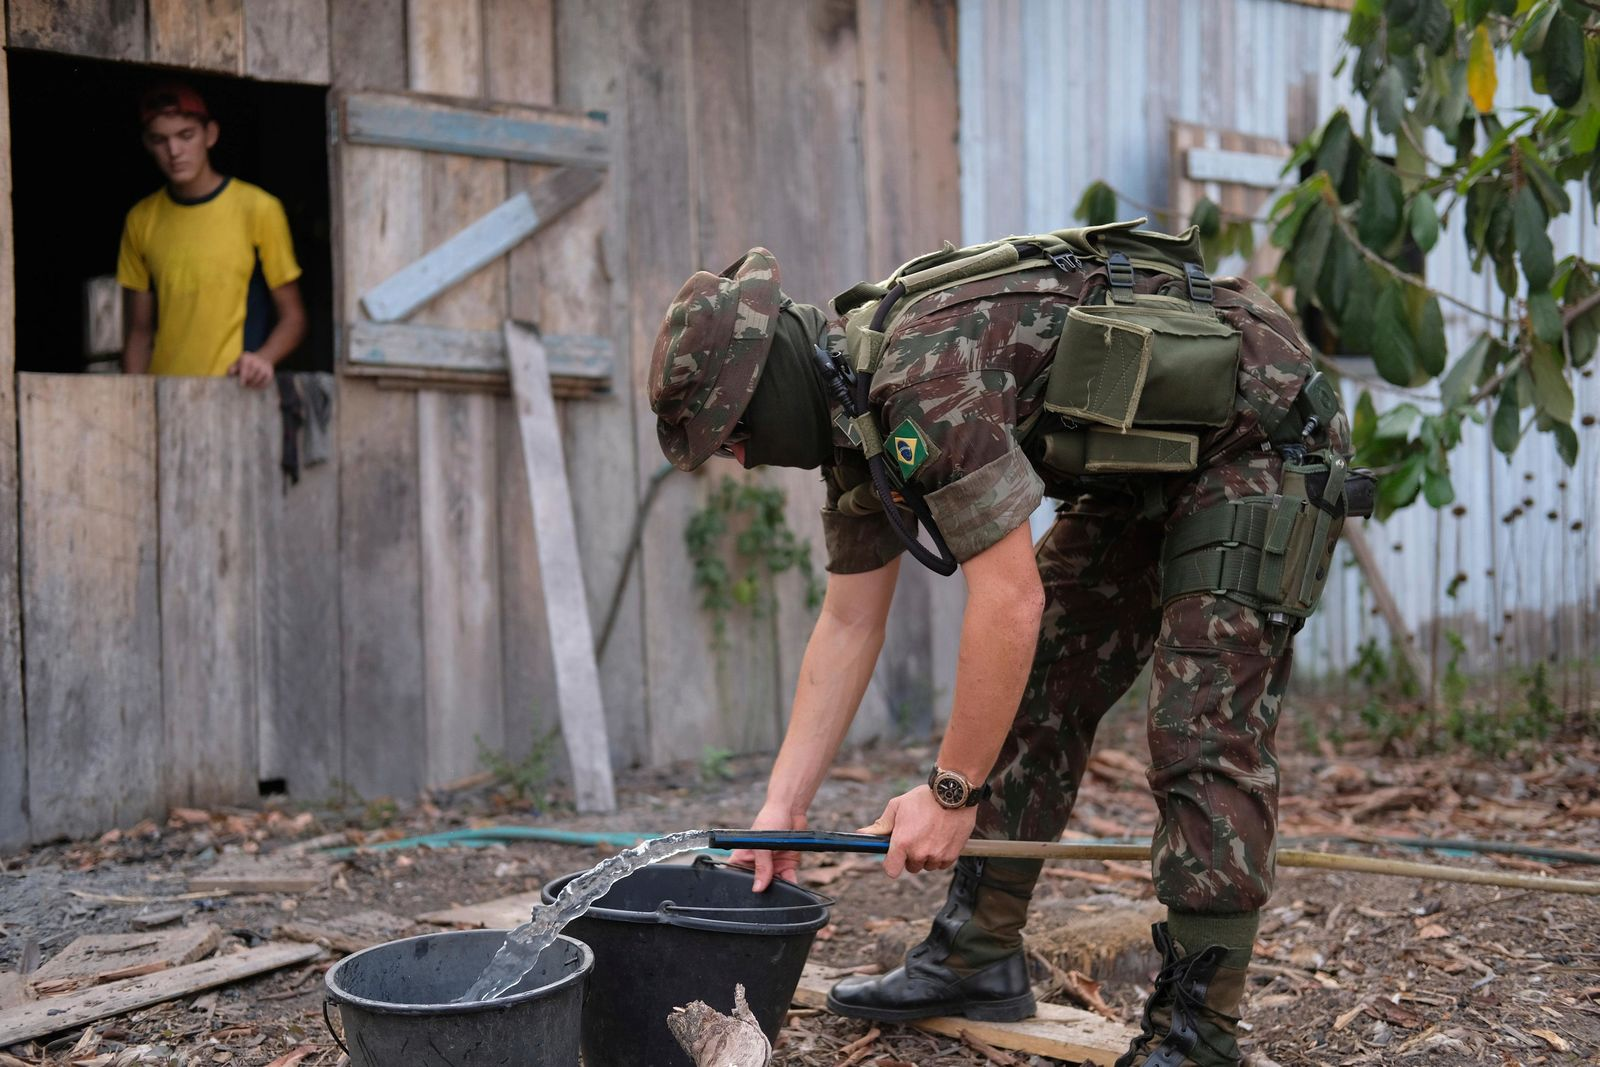 A member of Brazil's 17th brigade of jungle infantry fills up buckets with water at a property owned by the family of Eric Raauwendaal, left, at Jacunda National Forest, in the Amazonian state of Rondonia, Brazil, Thursday, August 29, 2019. A record number of fires in the Amazon has prompted an environmental crisis and a global outcry. (AP Photo/Luis Andres Henao)